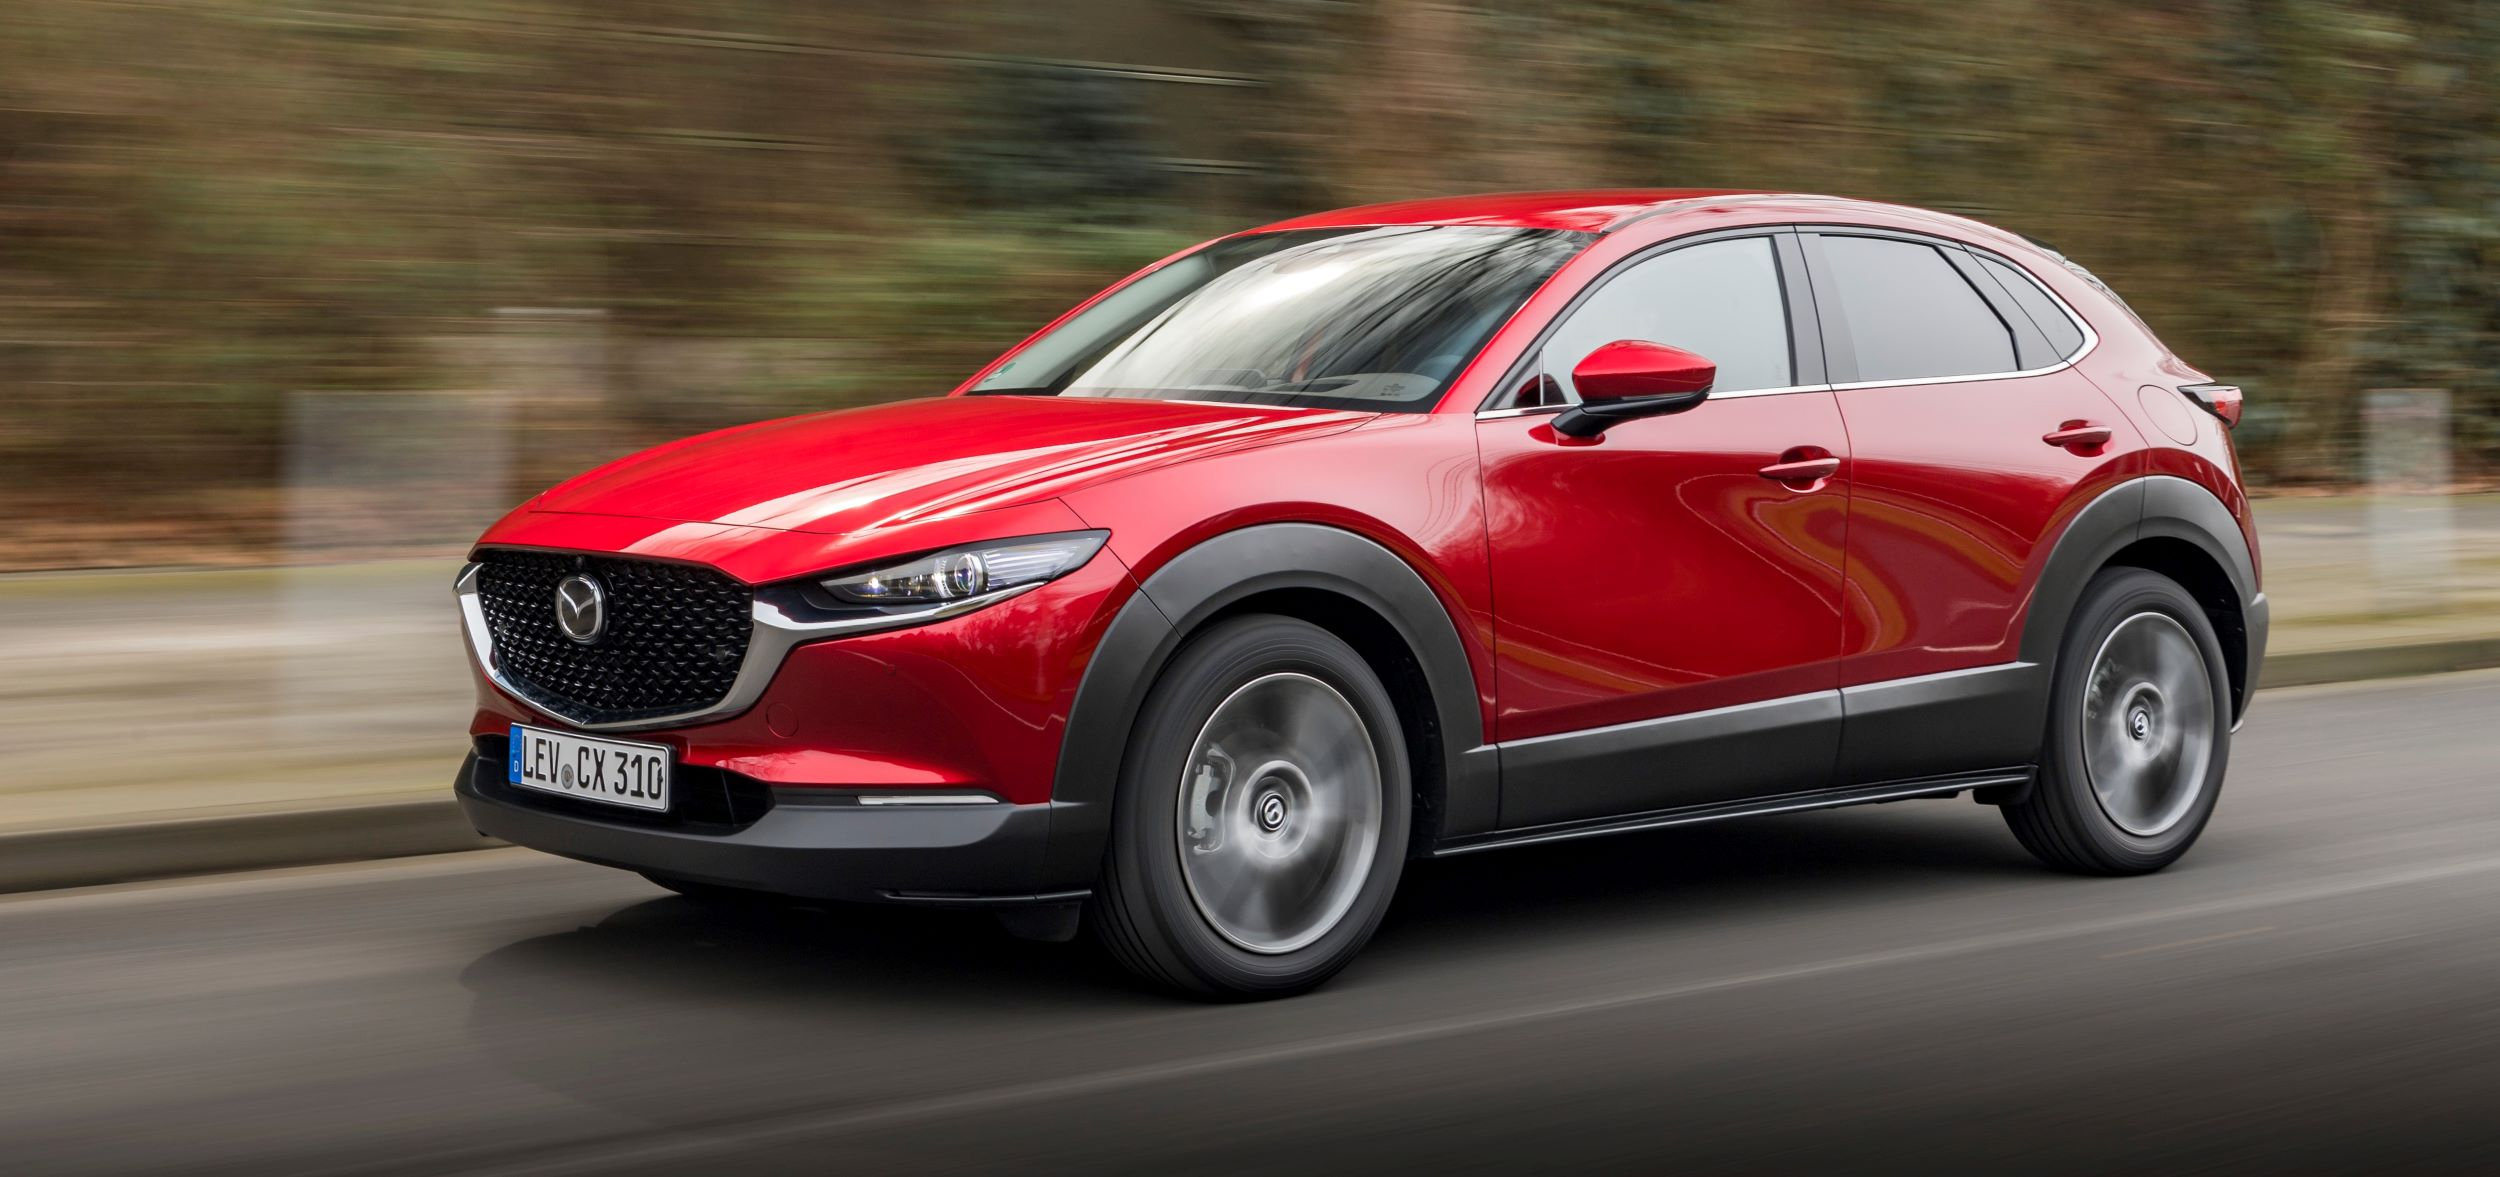 2021-Mazda-CX-30-Soul-Red-Crystal,-Action-05